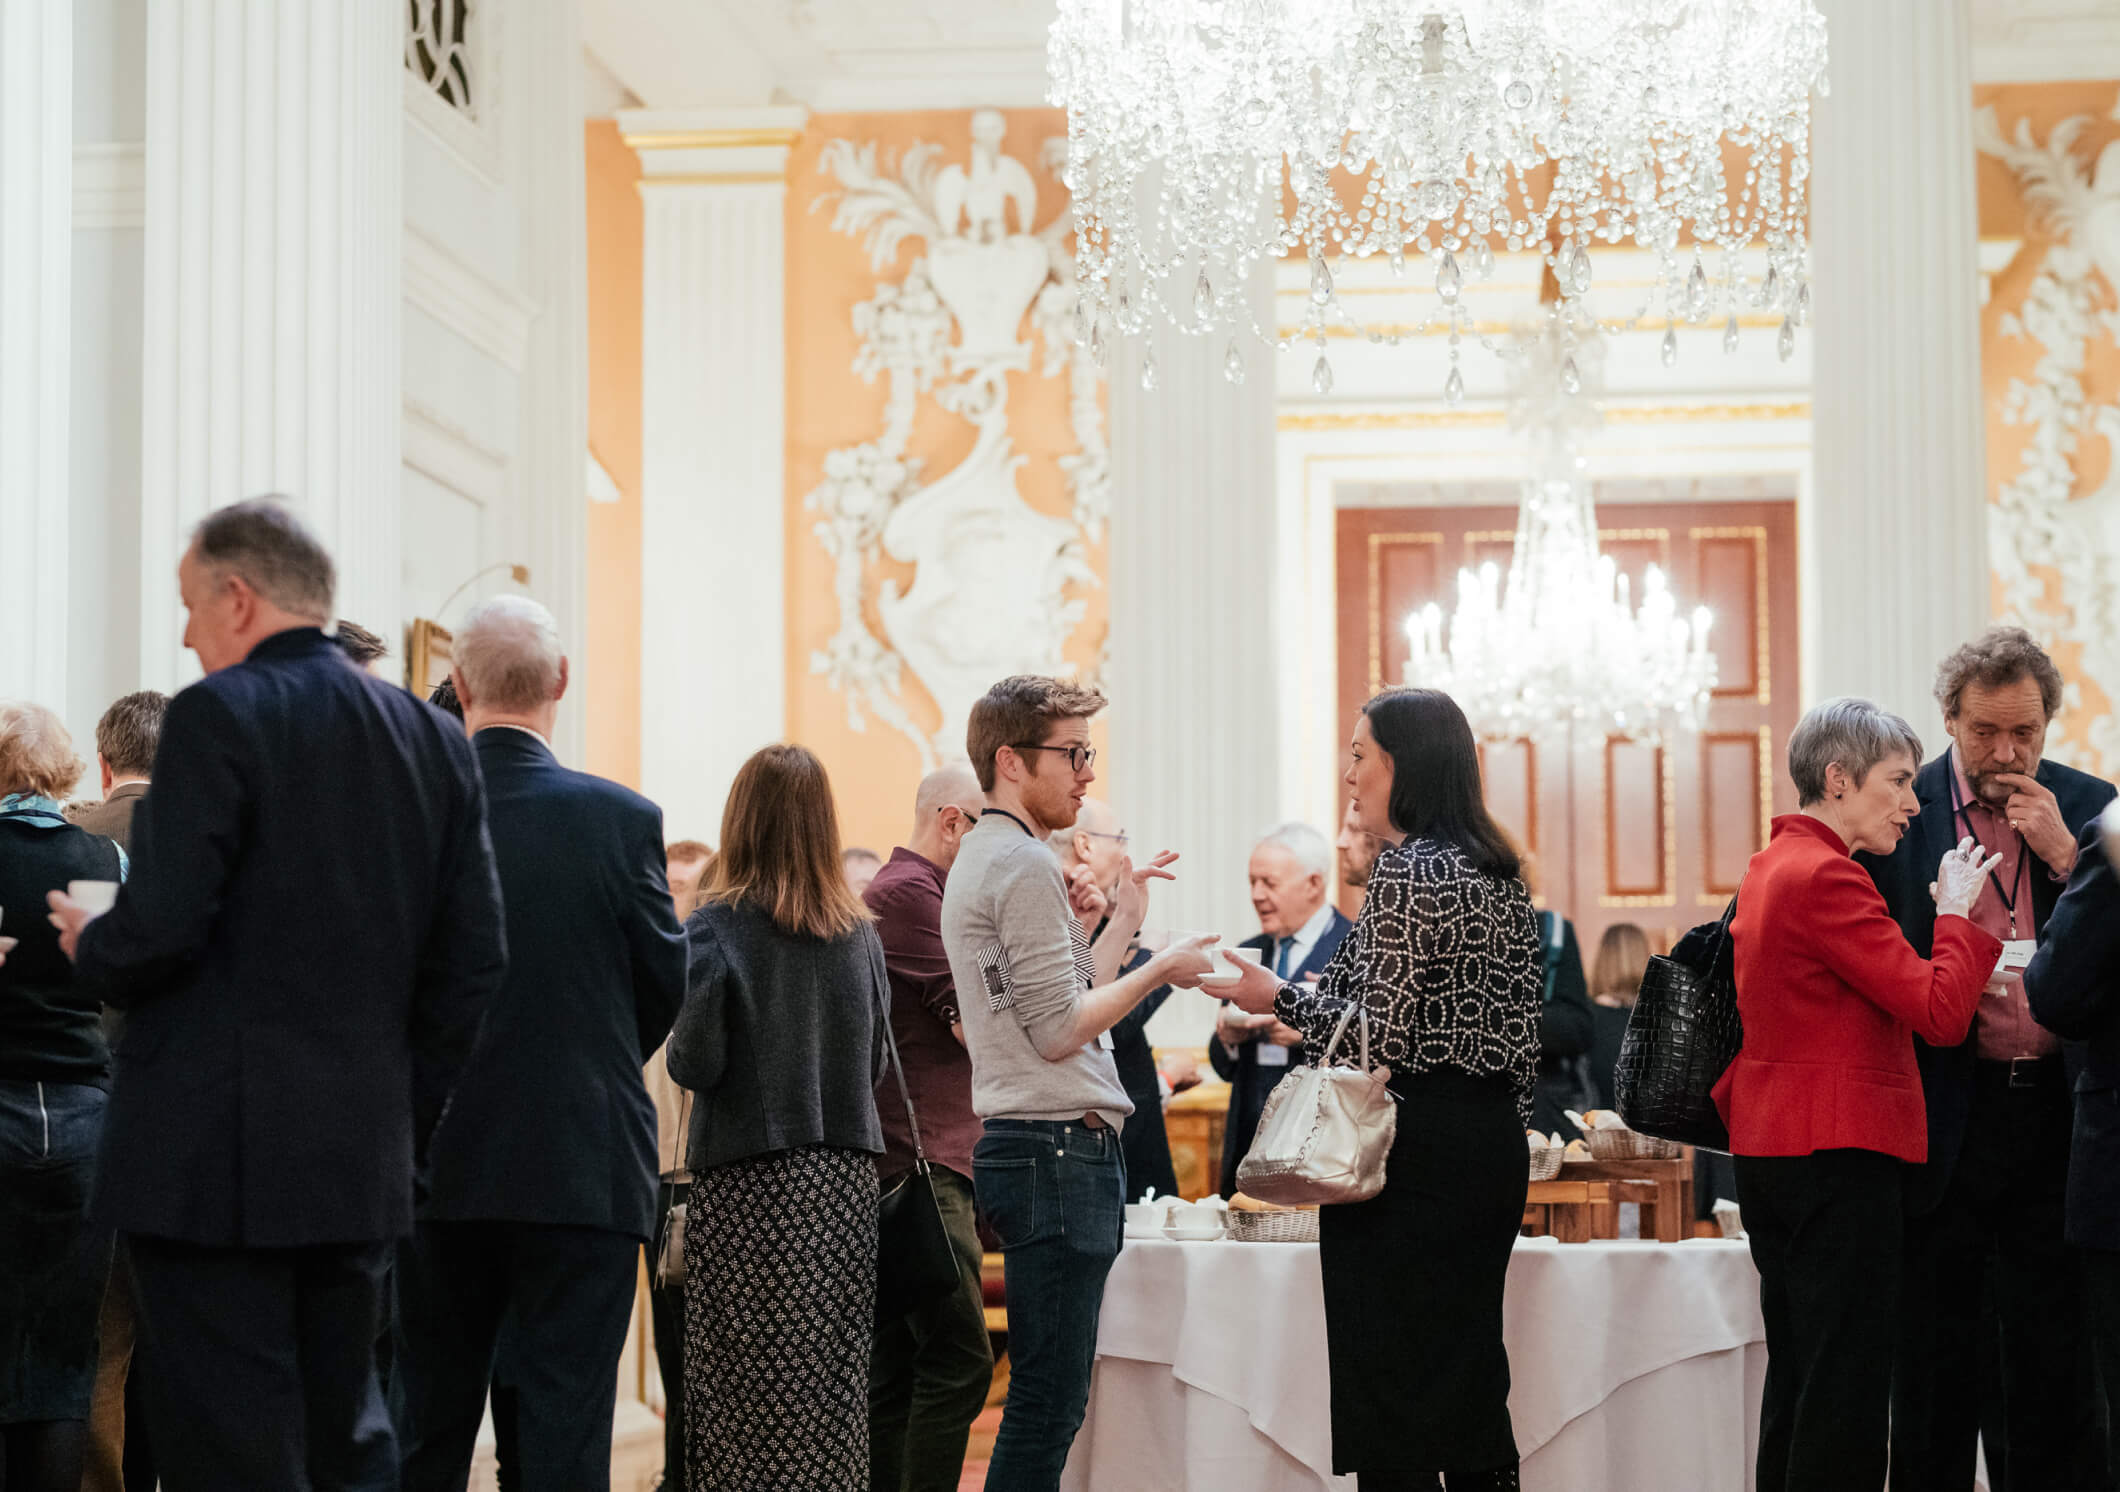 People at a networking event